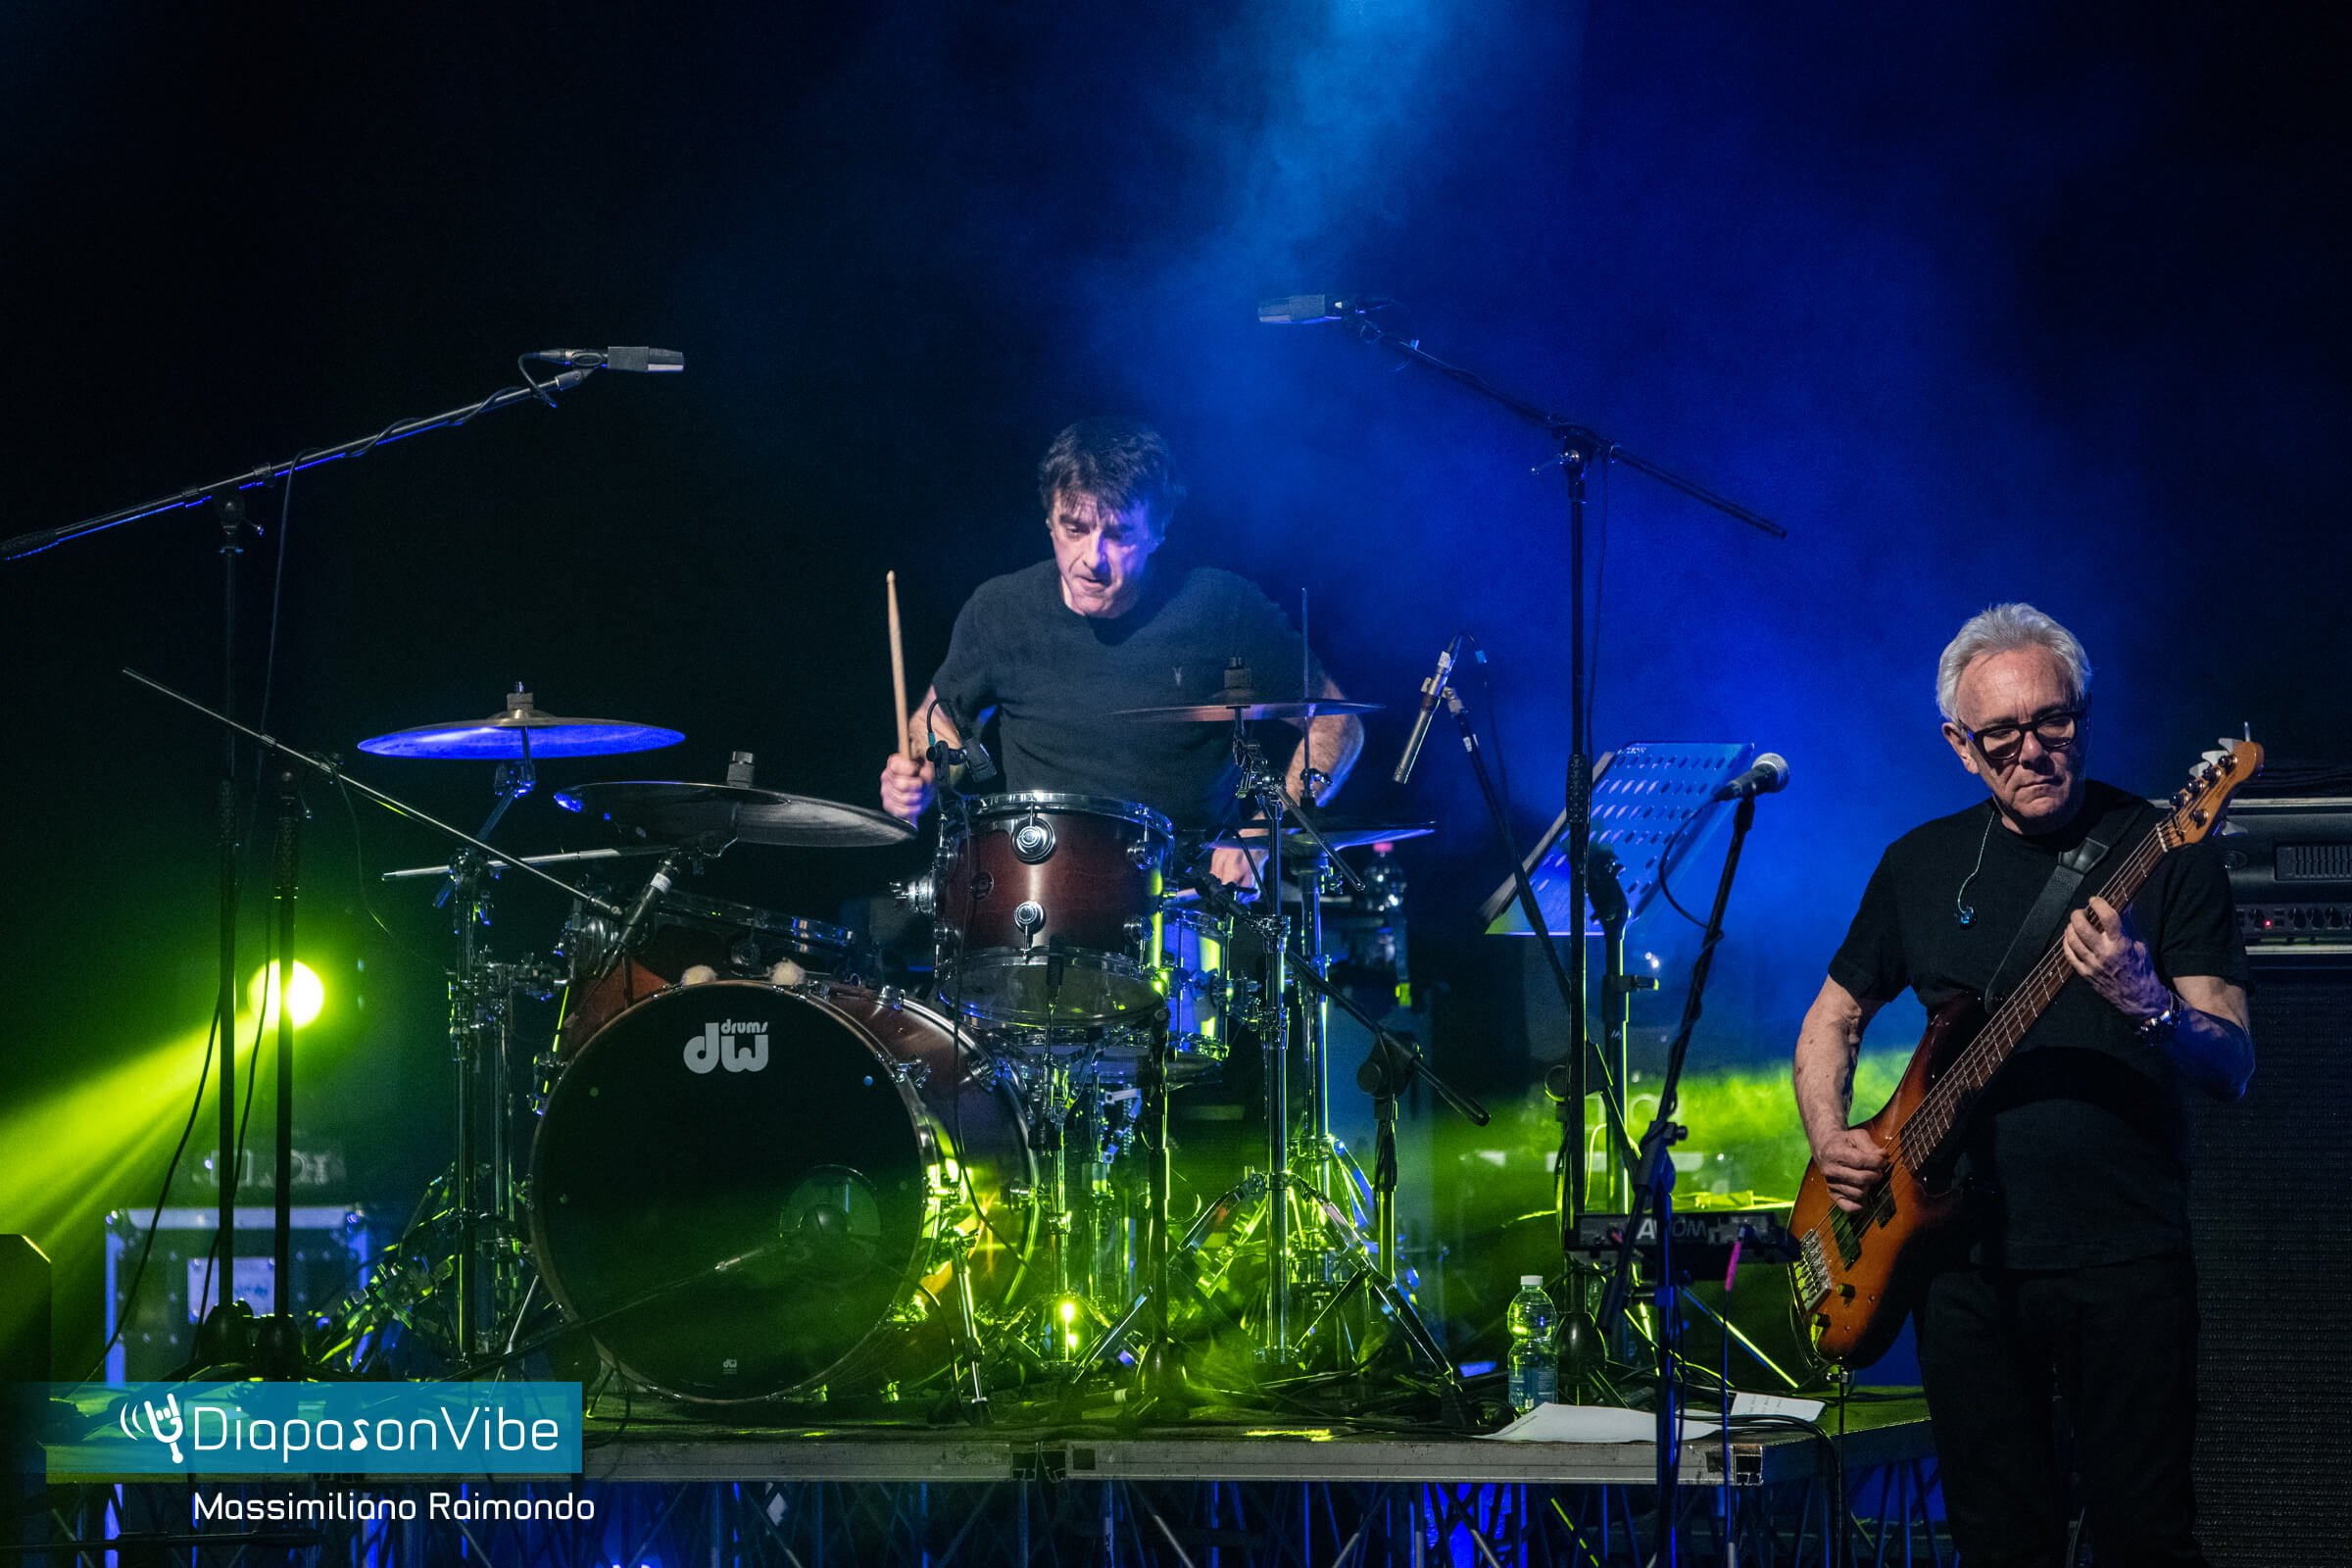 Andy Treacey with DW Drums